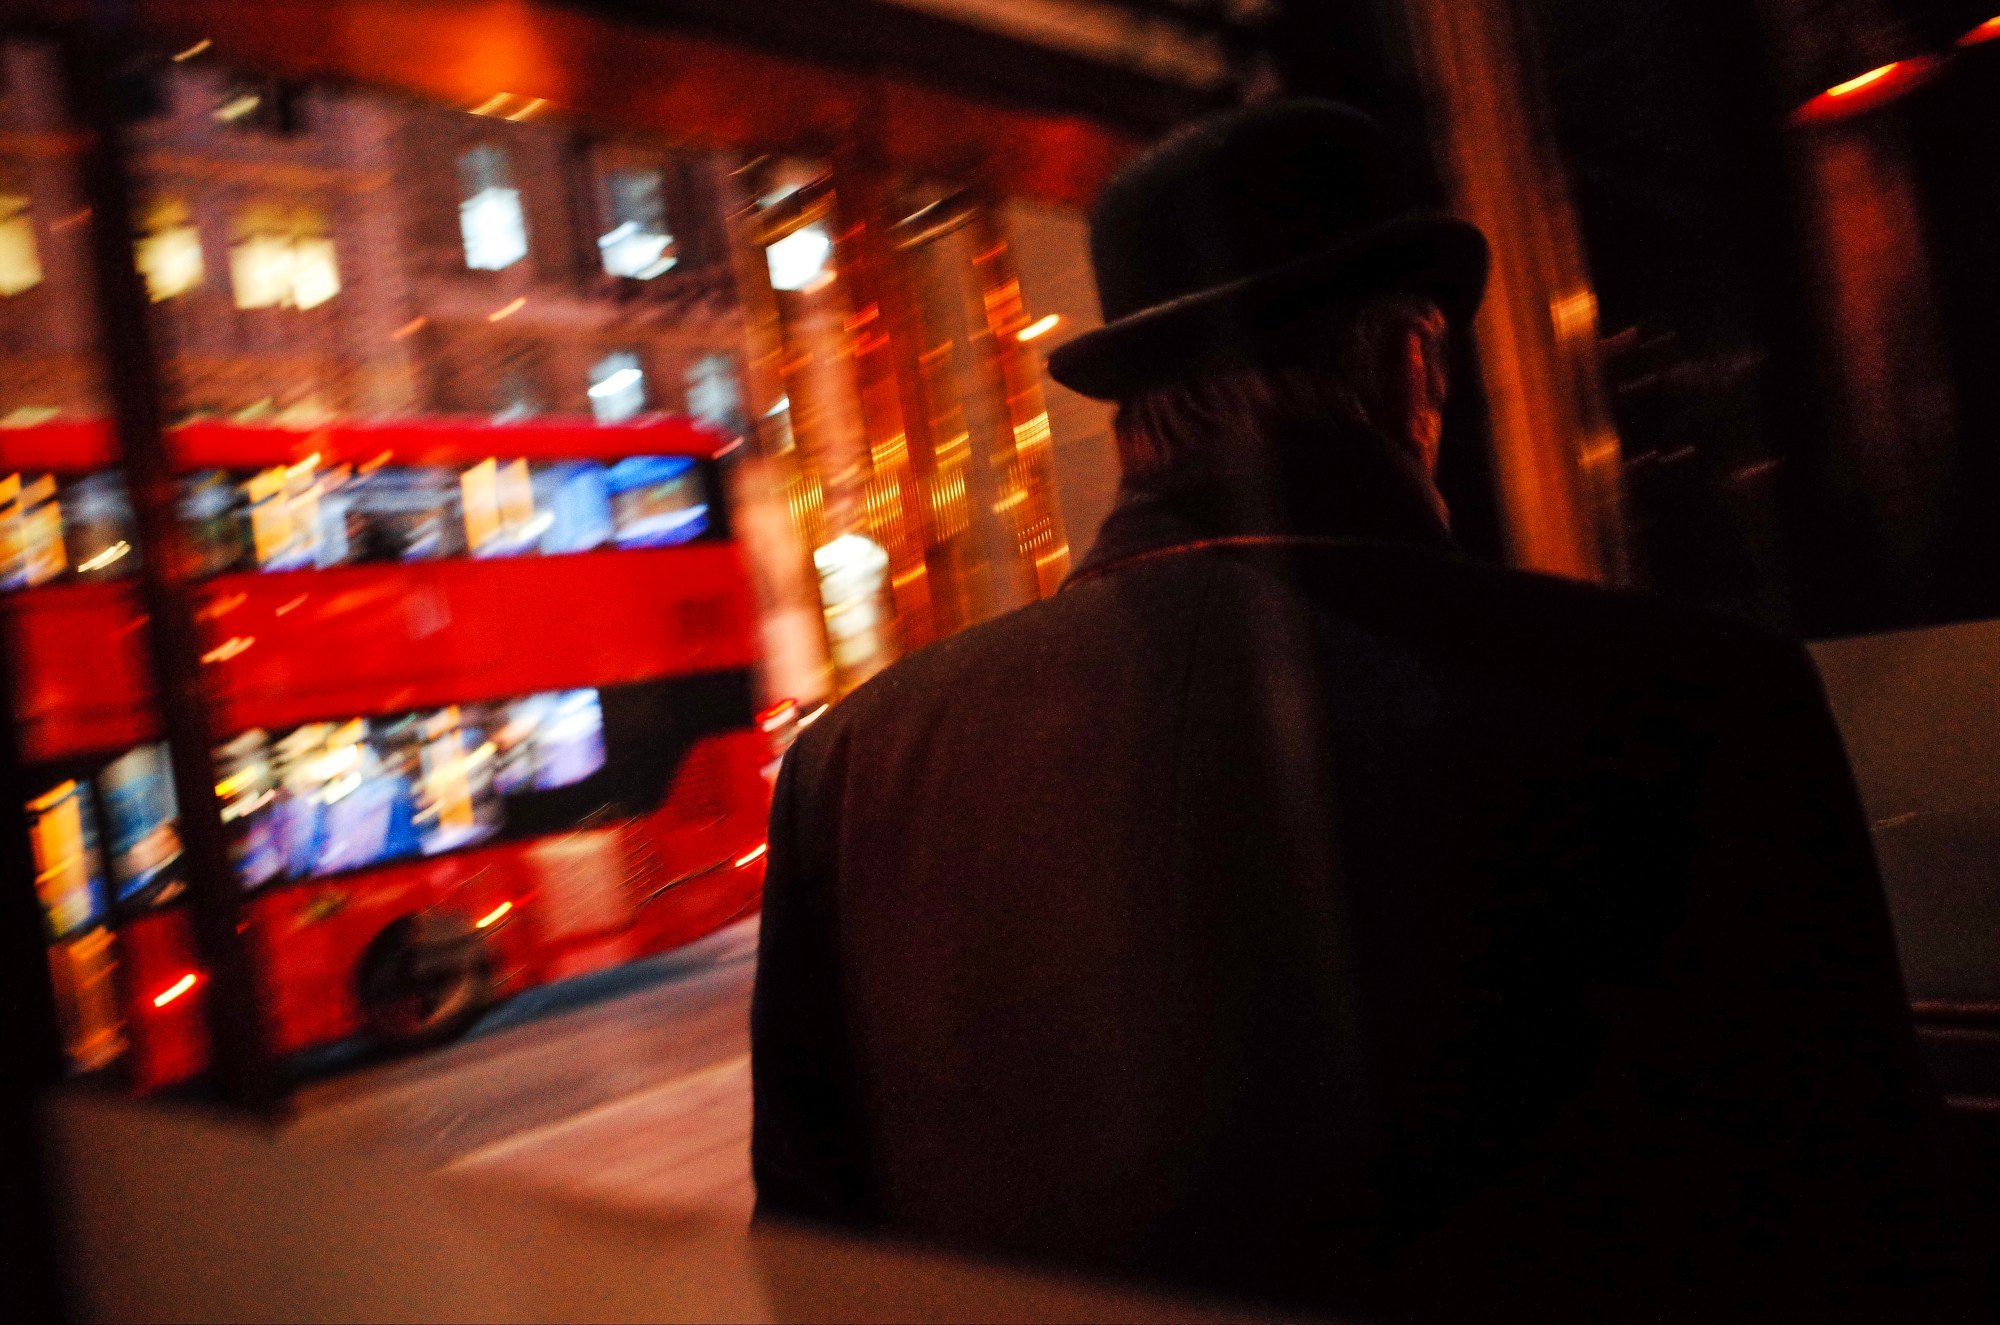 Man in bowler hat. Night street photo, London 2018